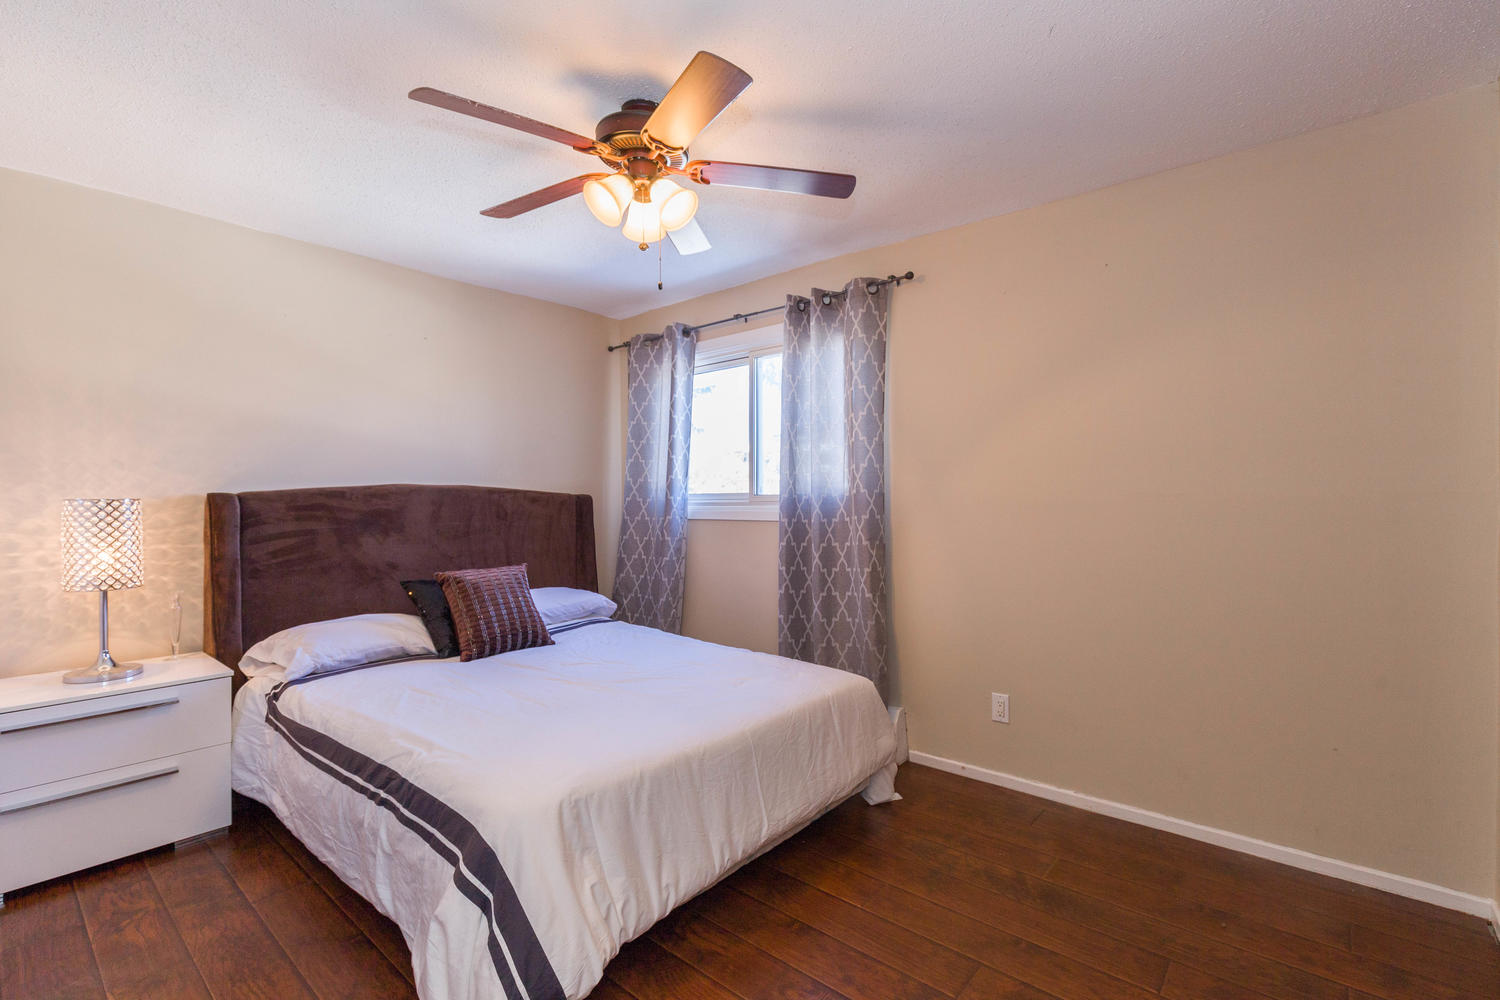 Very spacious and bright master bedroom with wall to wall closets and newer high end laminate flooring